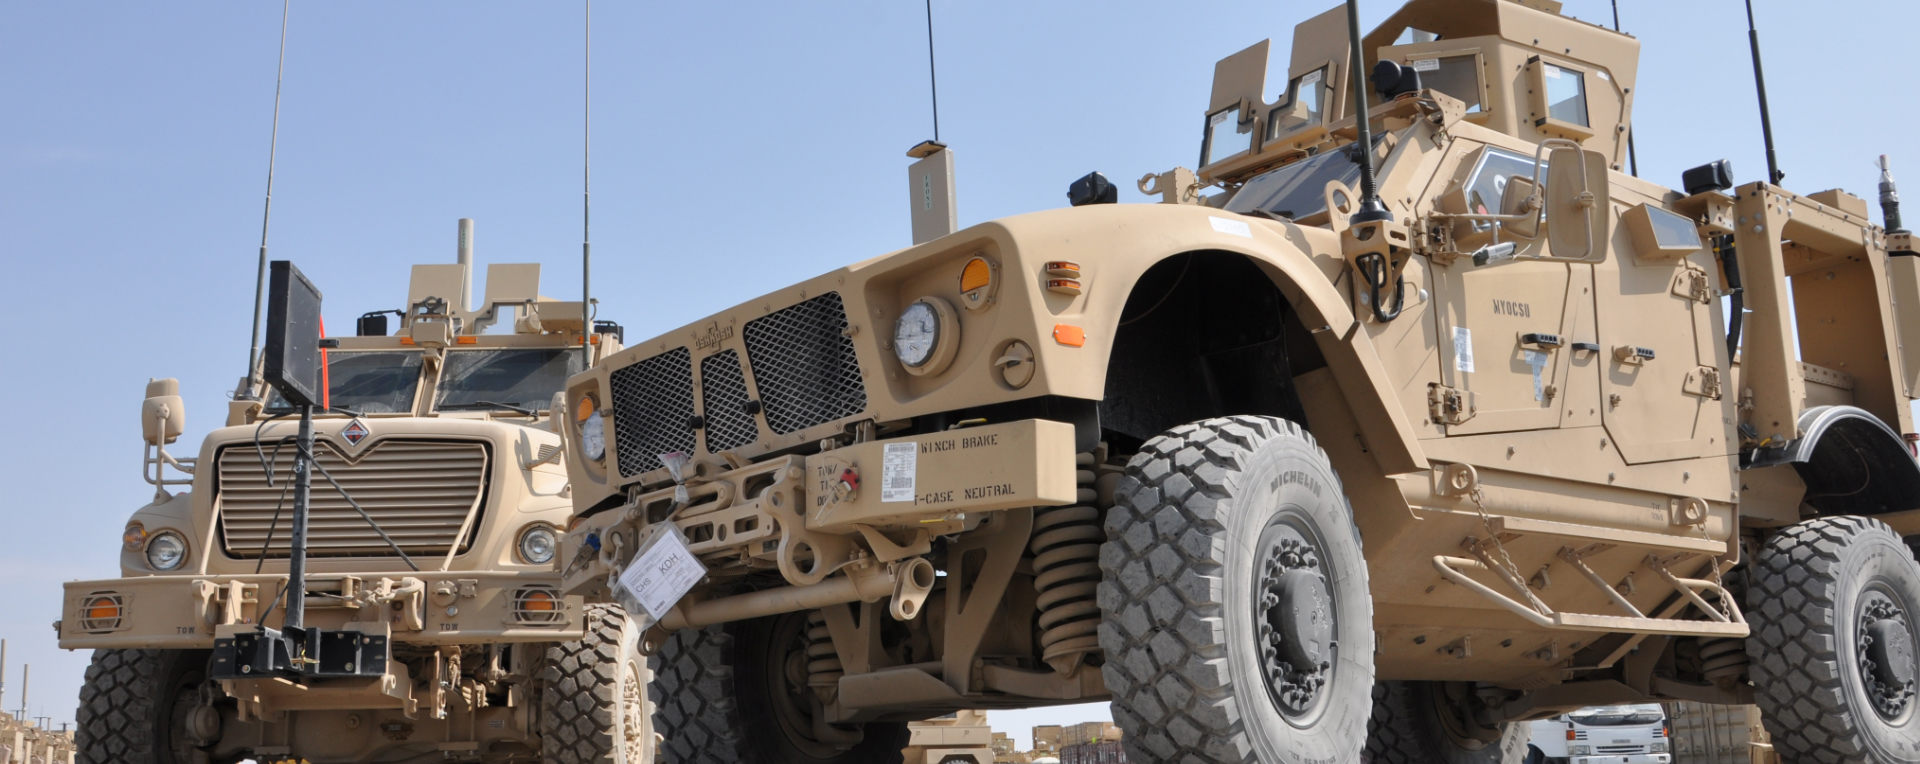 Aurora Defense Group - Lights for Military Vehicles